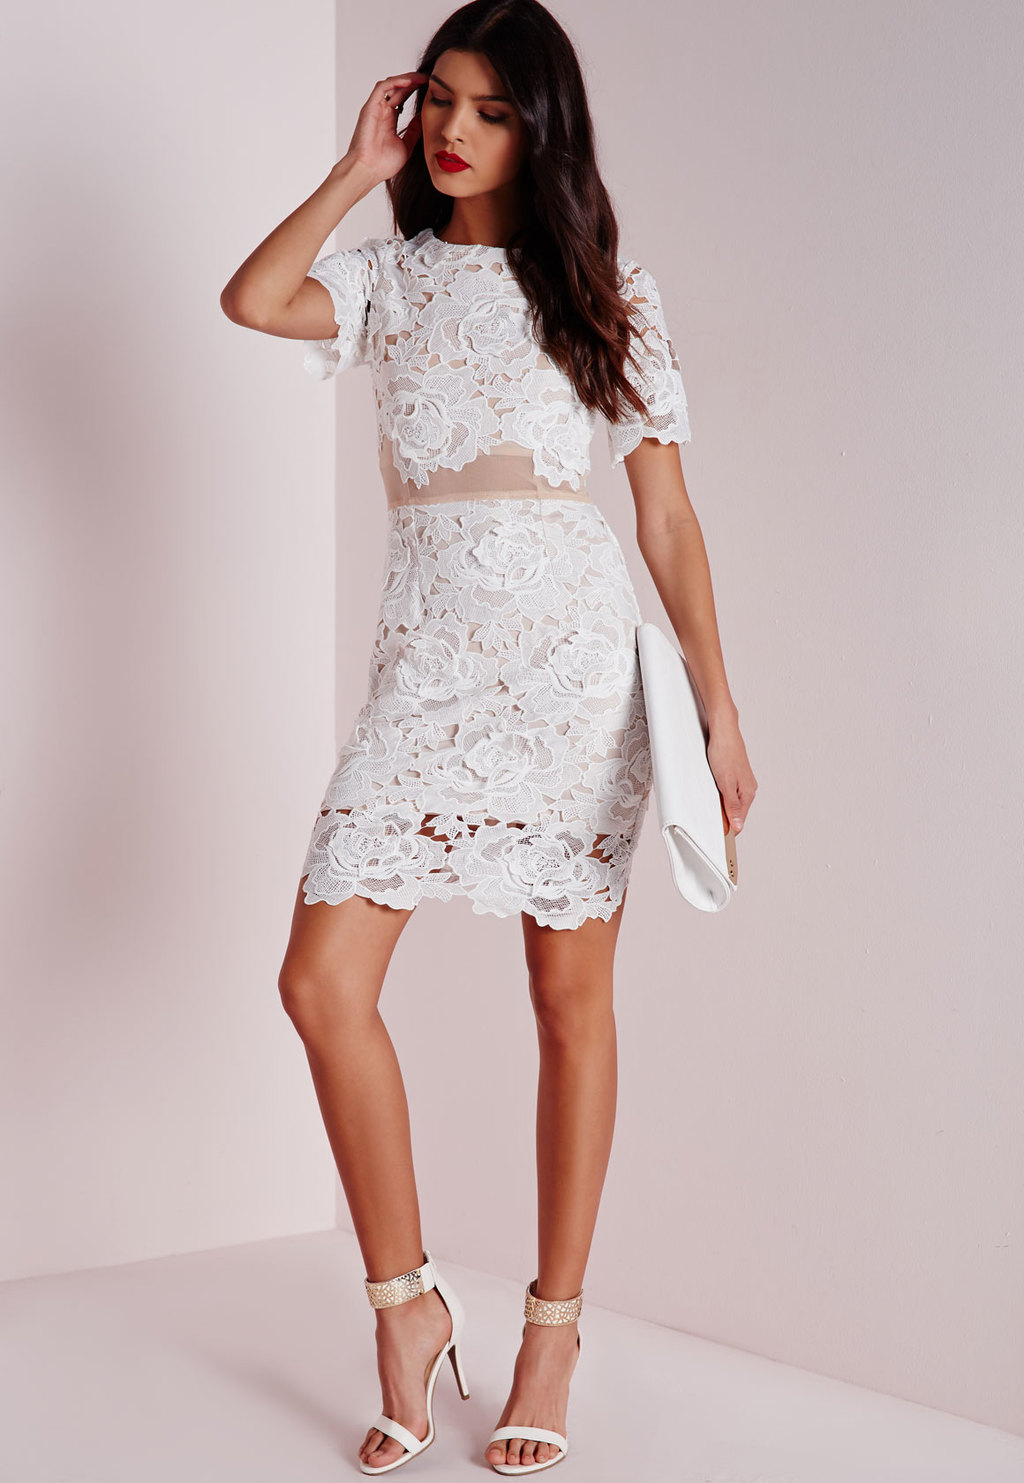 Floral Lace Mesh Waist Bodycon Dress White, Beige - fit: tight; pattern: plain; style: bodycon; predominant colour: white; occasions: evening, occasion; length: just above the knee; fibres: polyester/polyamide - stretch; neckline: crew; sleeve length: short sleeve; sleeve style: standard; texture group: lace; pattern type: fabric; pattern size: standard; embellishment: lace; season: a/w 2015; wardrobe: event